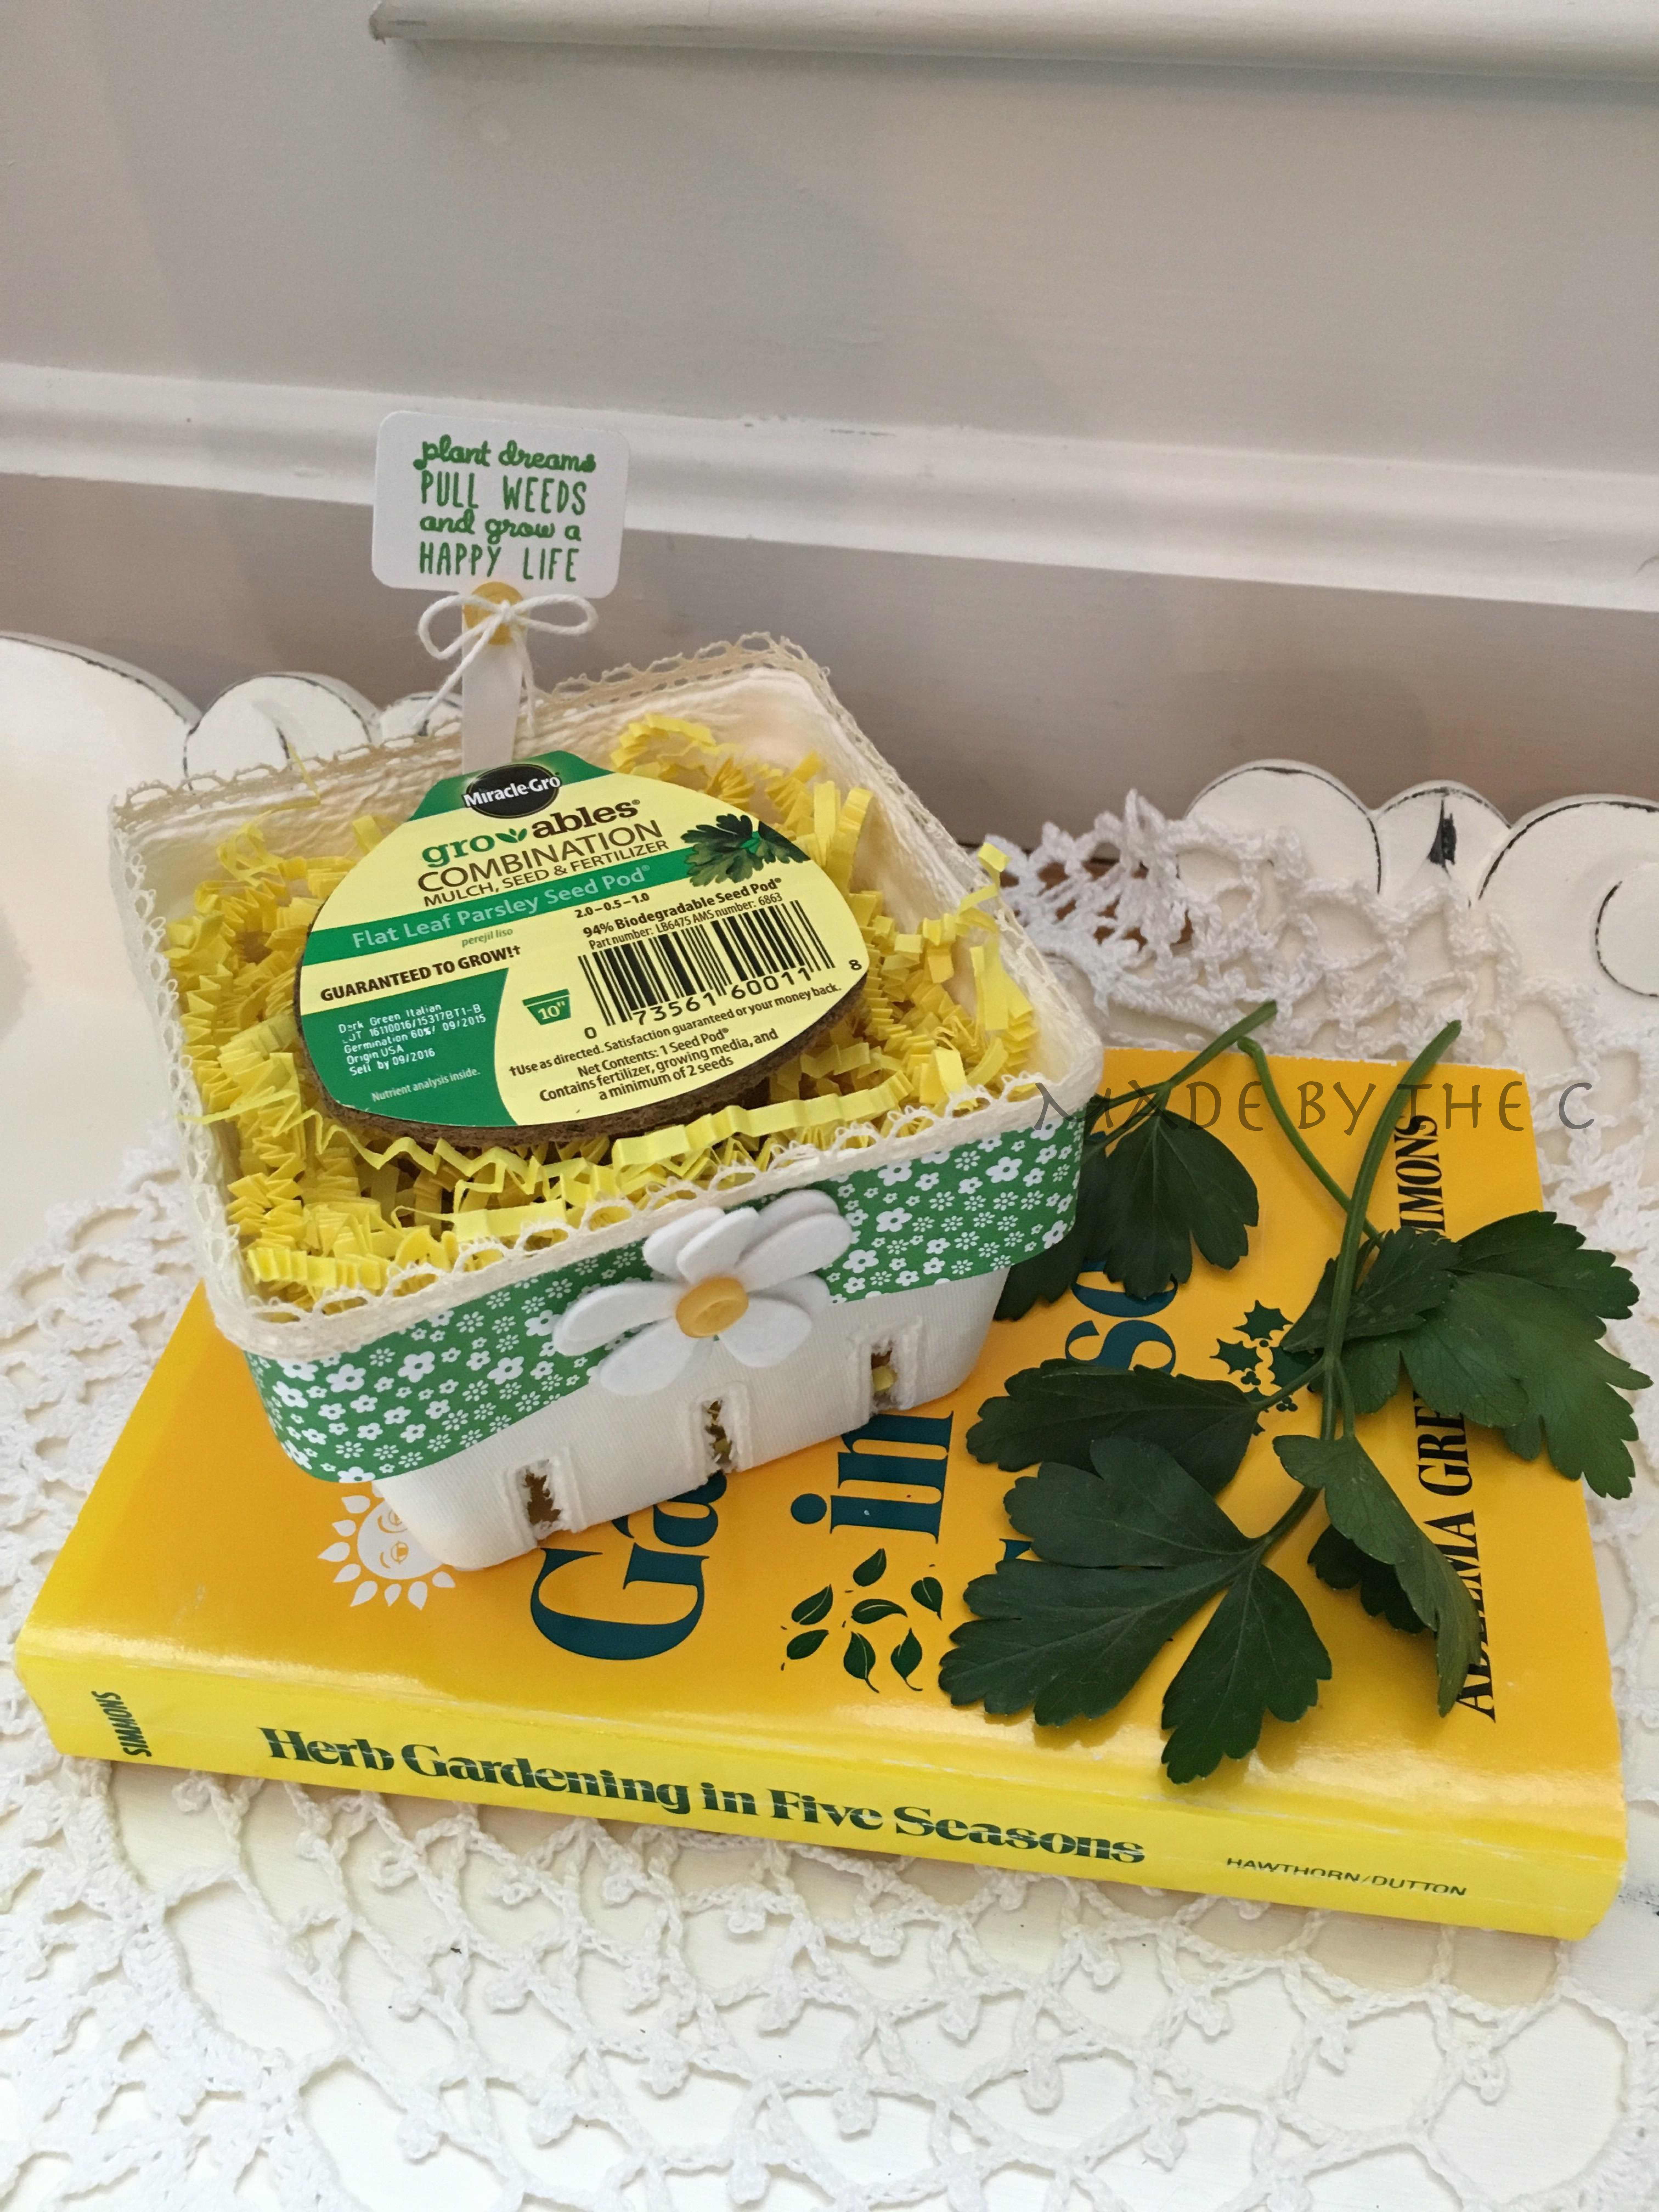 Finished seed pod packaging with yellow filler_1